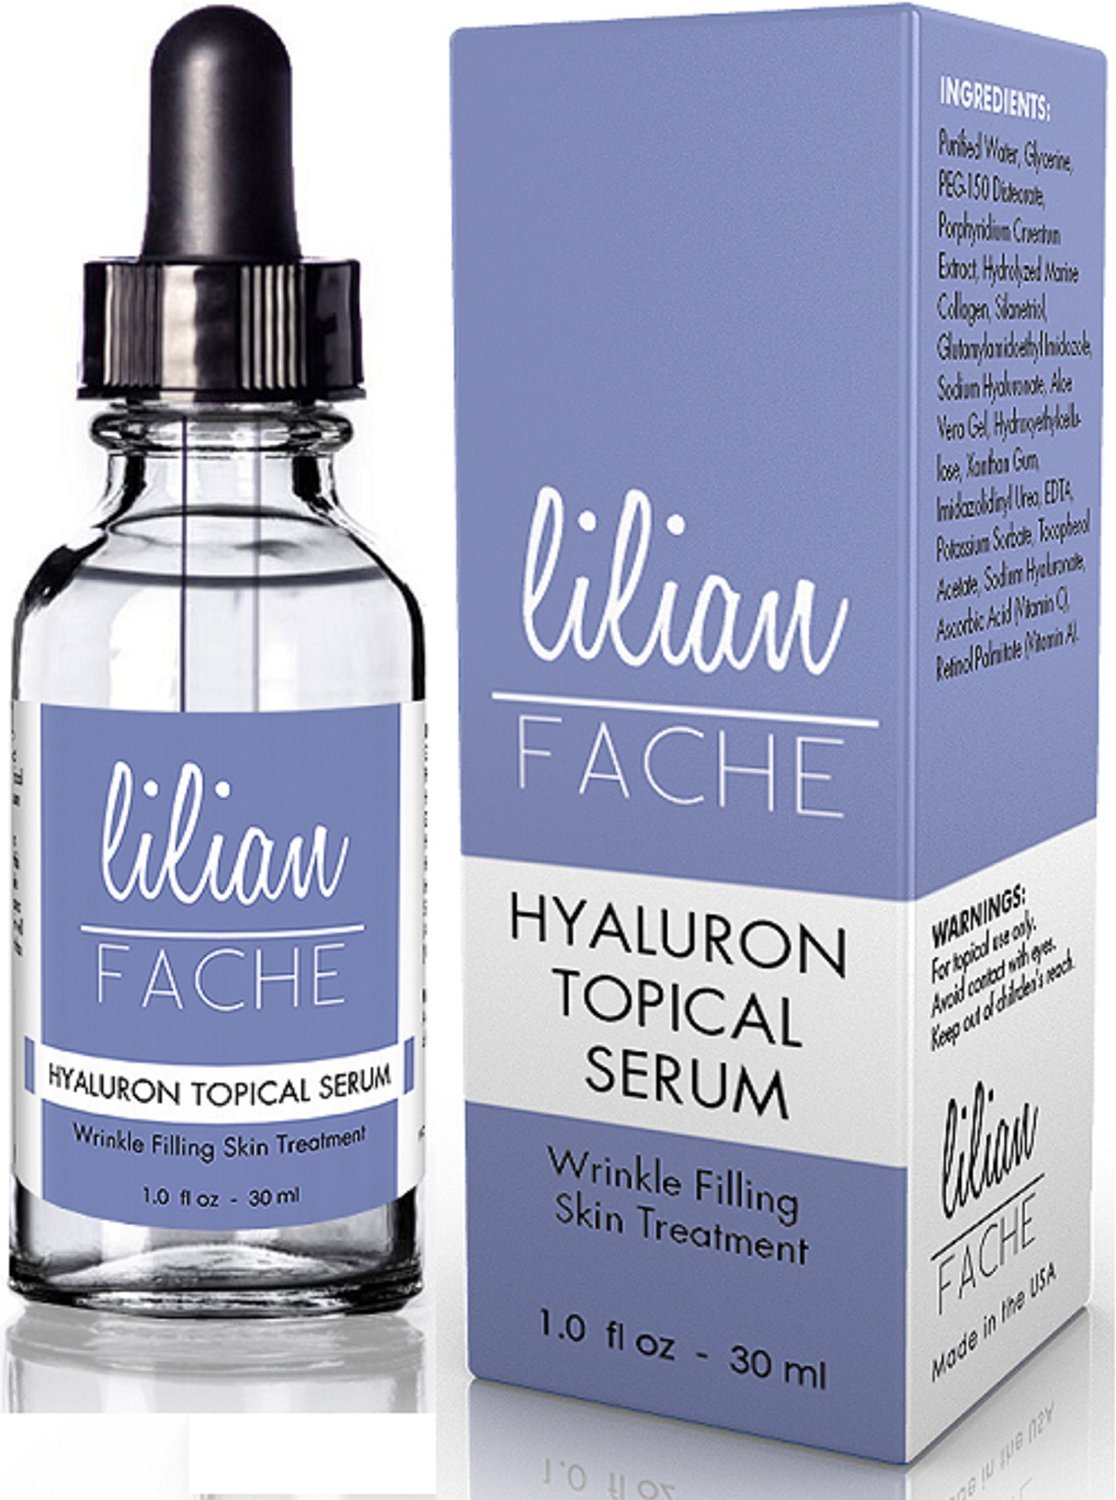 Wrinkle Filling Hyaluron (Hyaluronic Acid) Topical Serum From Lilian Fache - Highest Quality - Anti Aging Formula 30ml by Lilian Fache